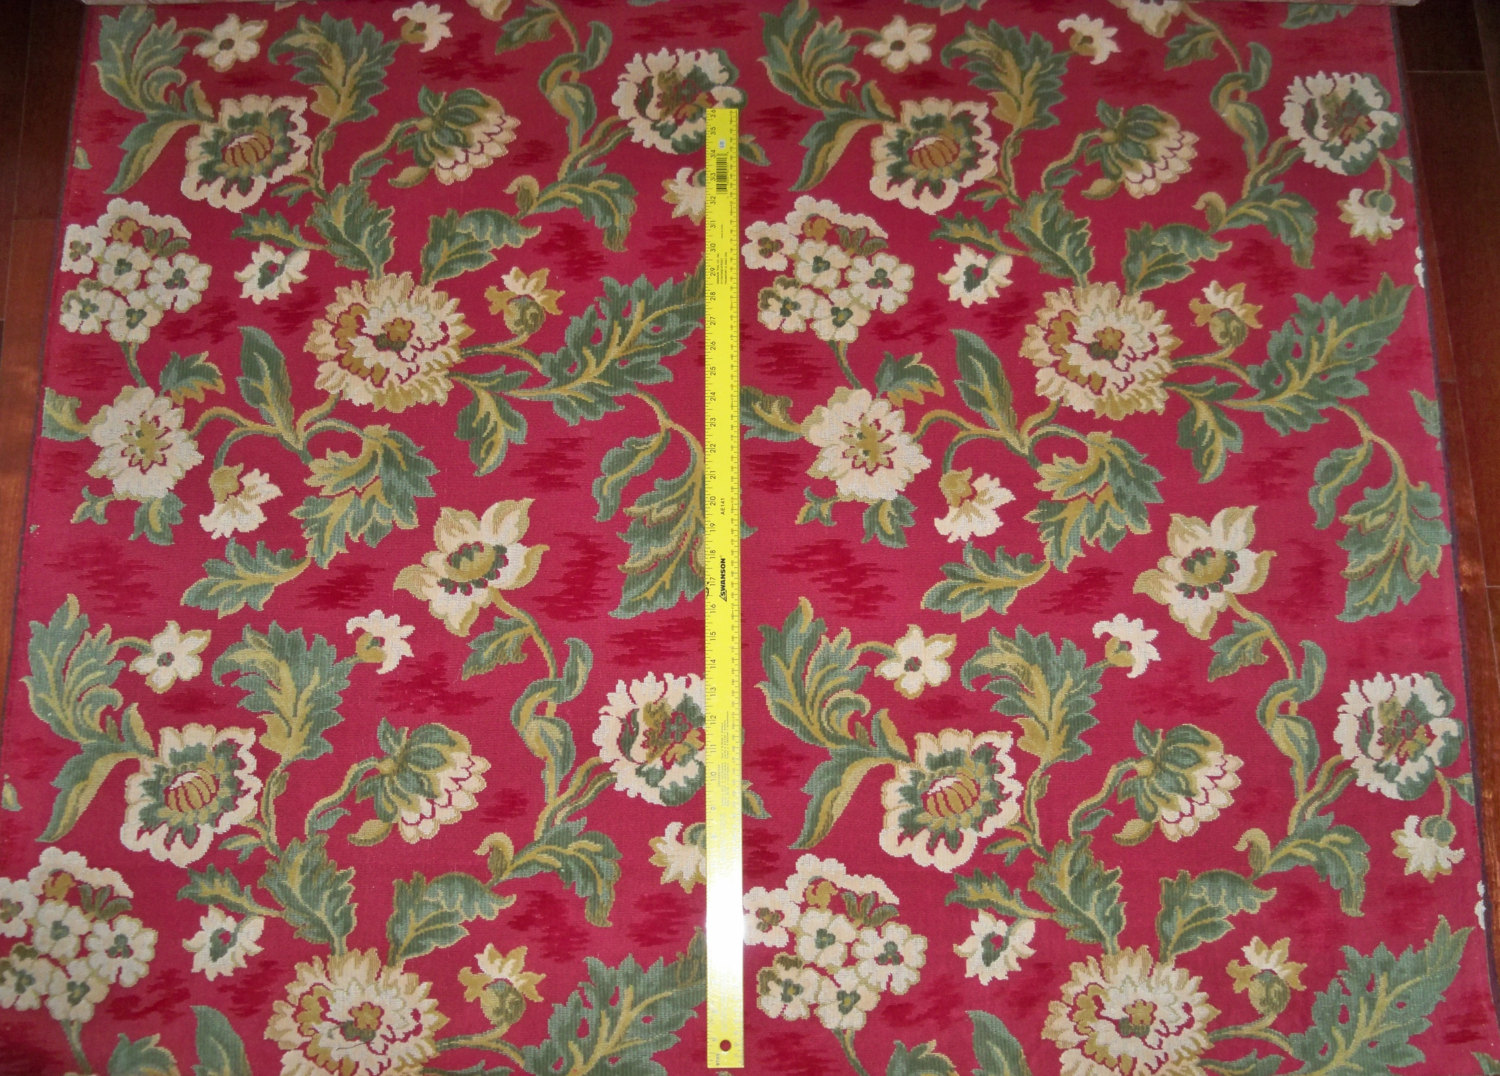 Worksheet 5 Yards Of Fabric brunschwig fils exclusive ombremont grospoint velvet fabric 5 yards rouge 10 jpg rouge